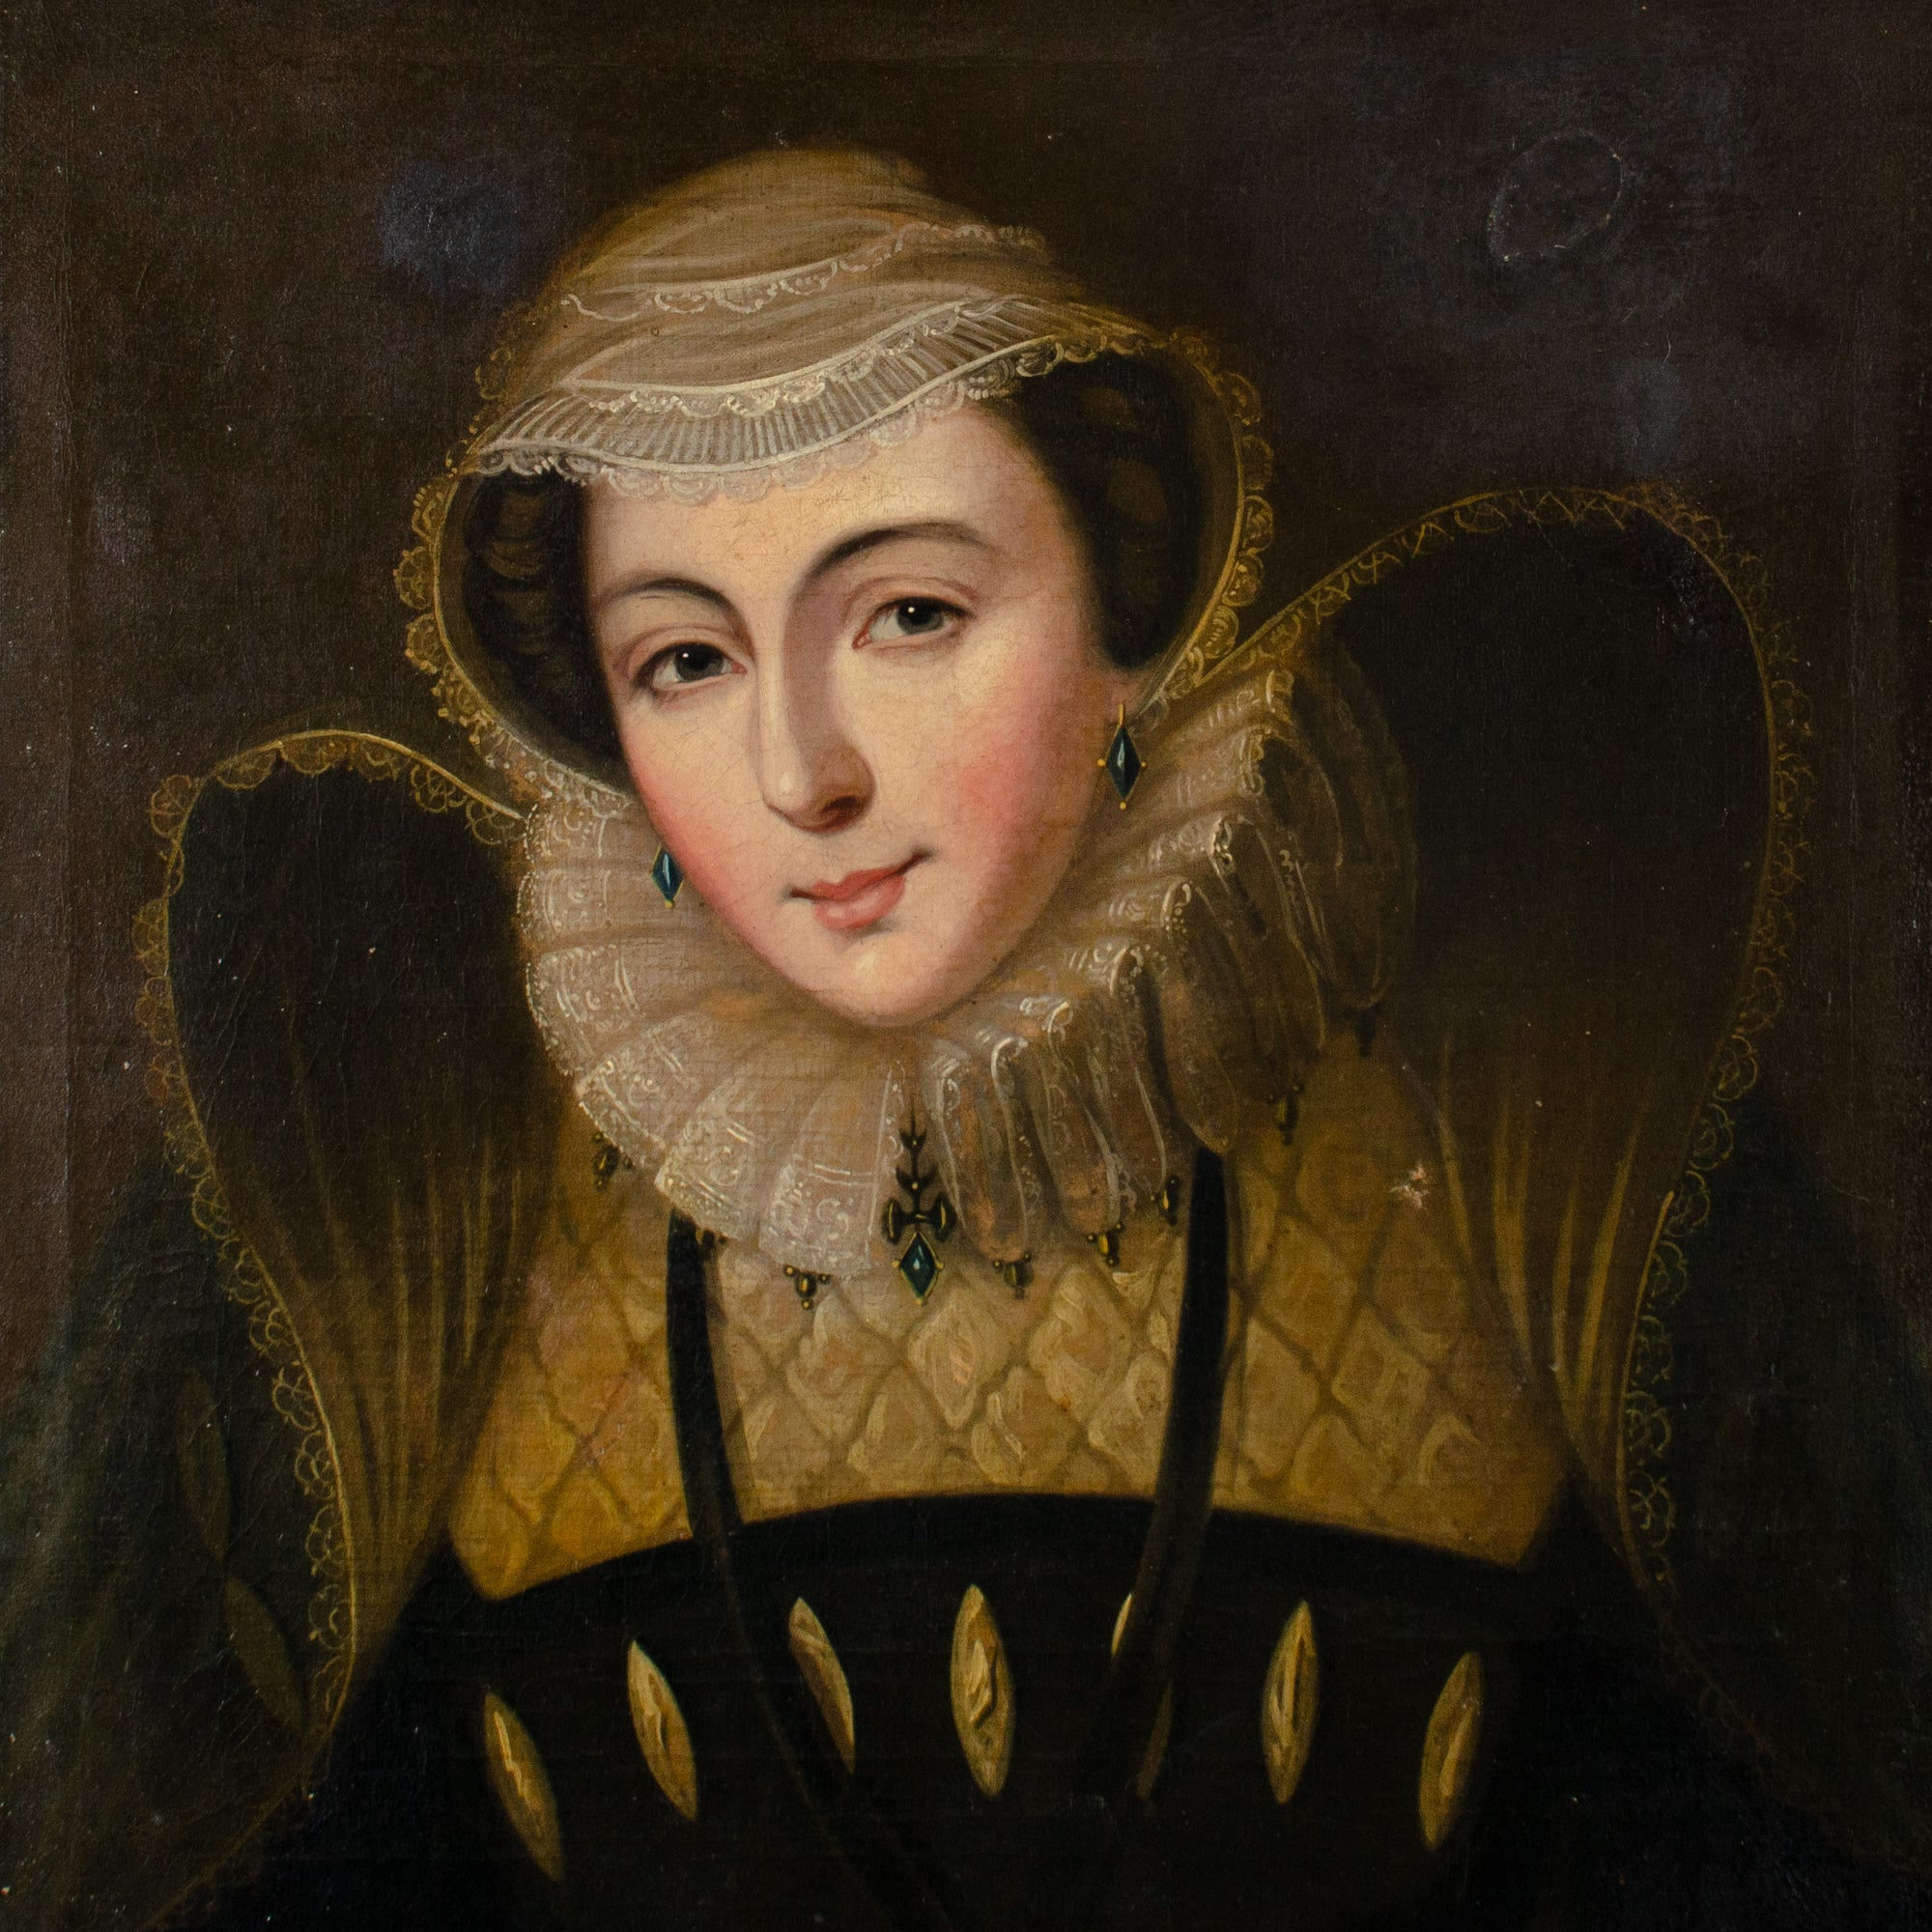 Mary Queen of Scots Portrait Painting, 18th Century